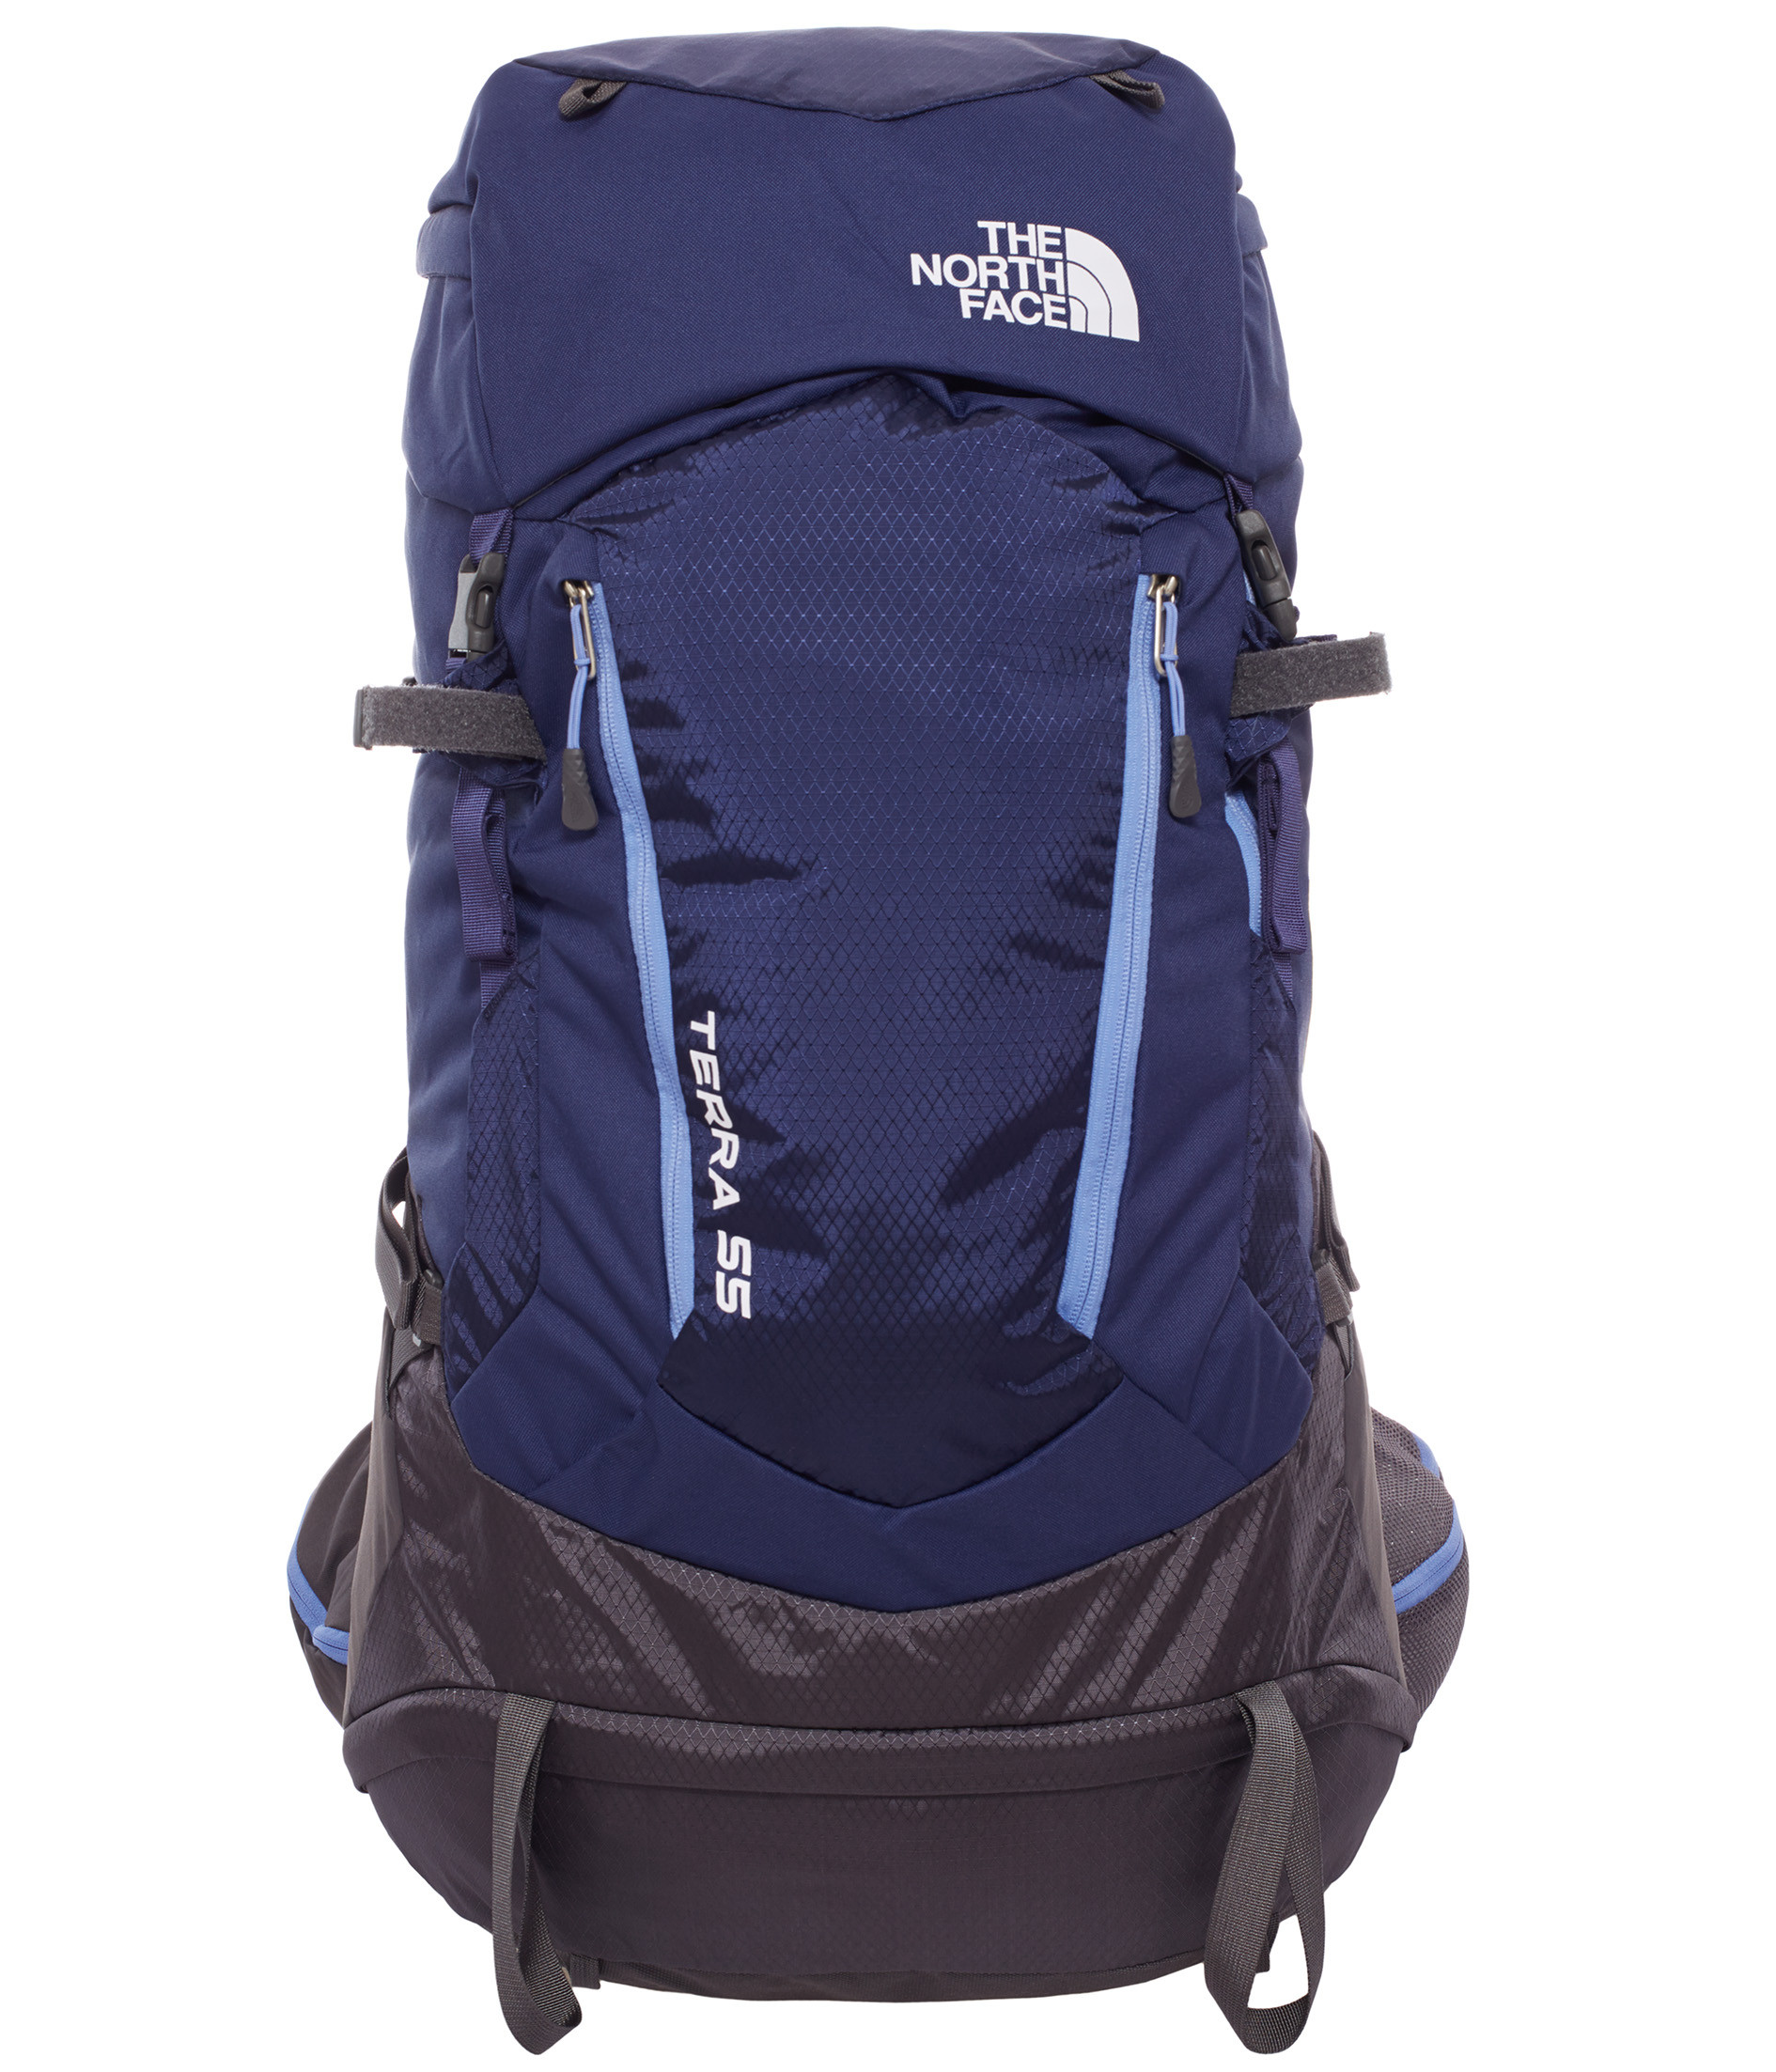 The North Face Terra 55 női túrazsák -  Kék